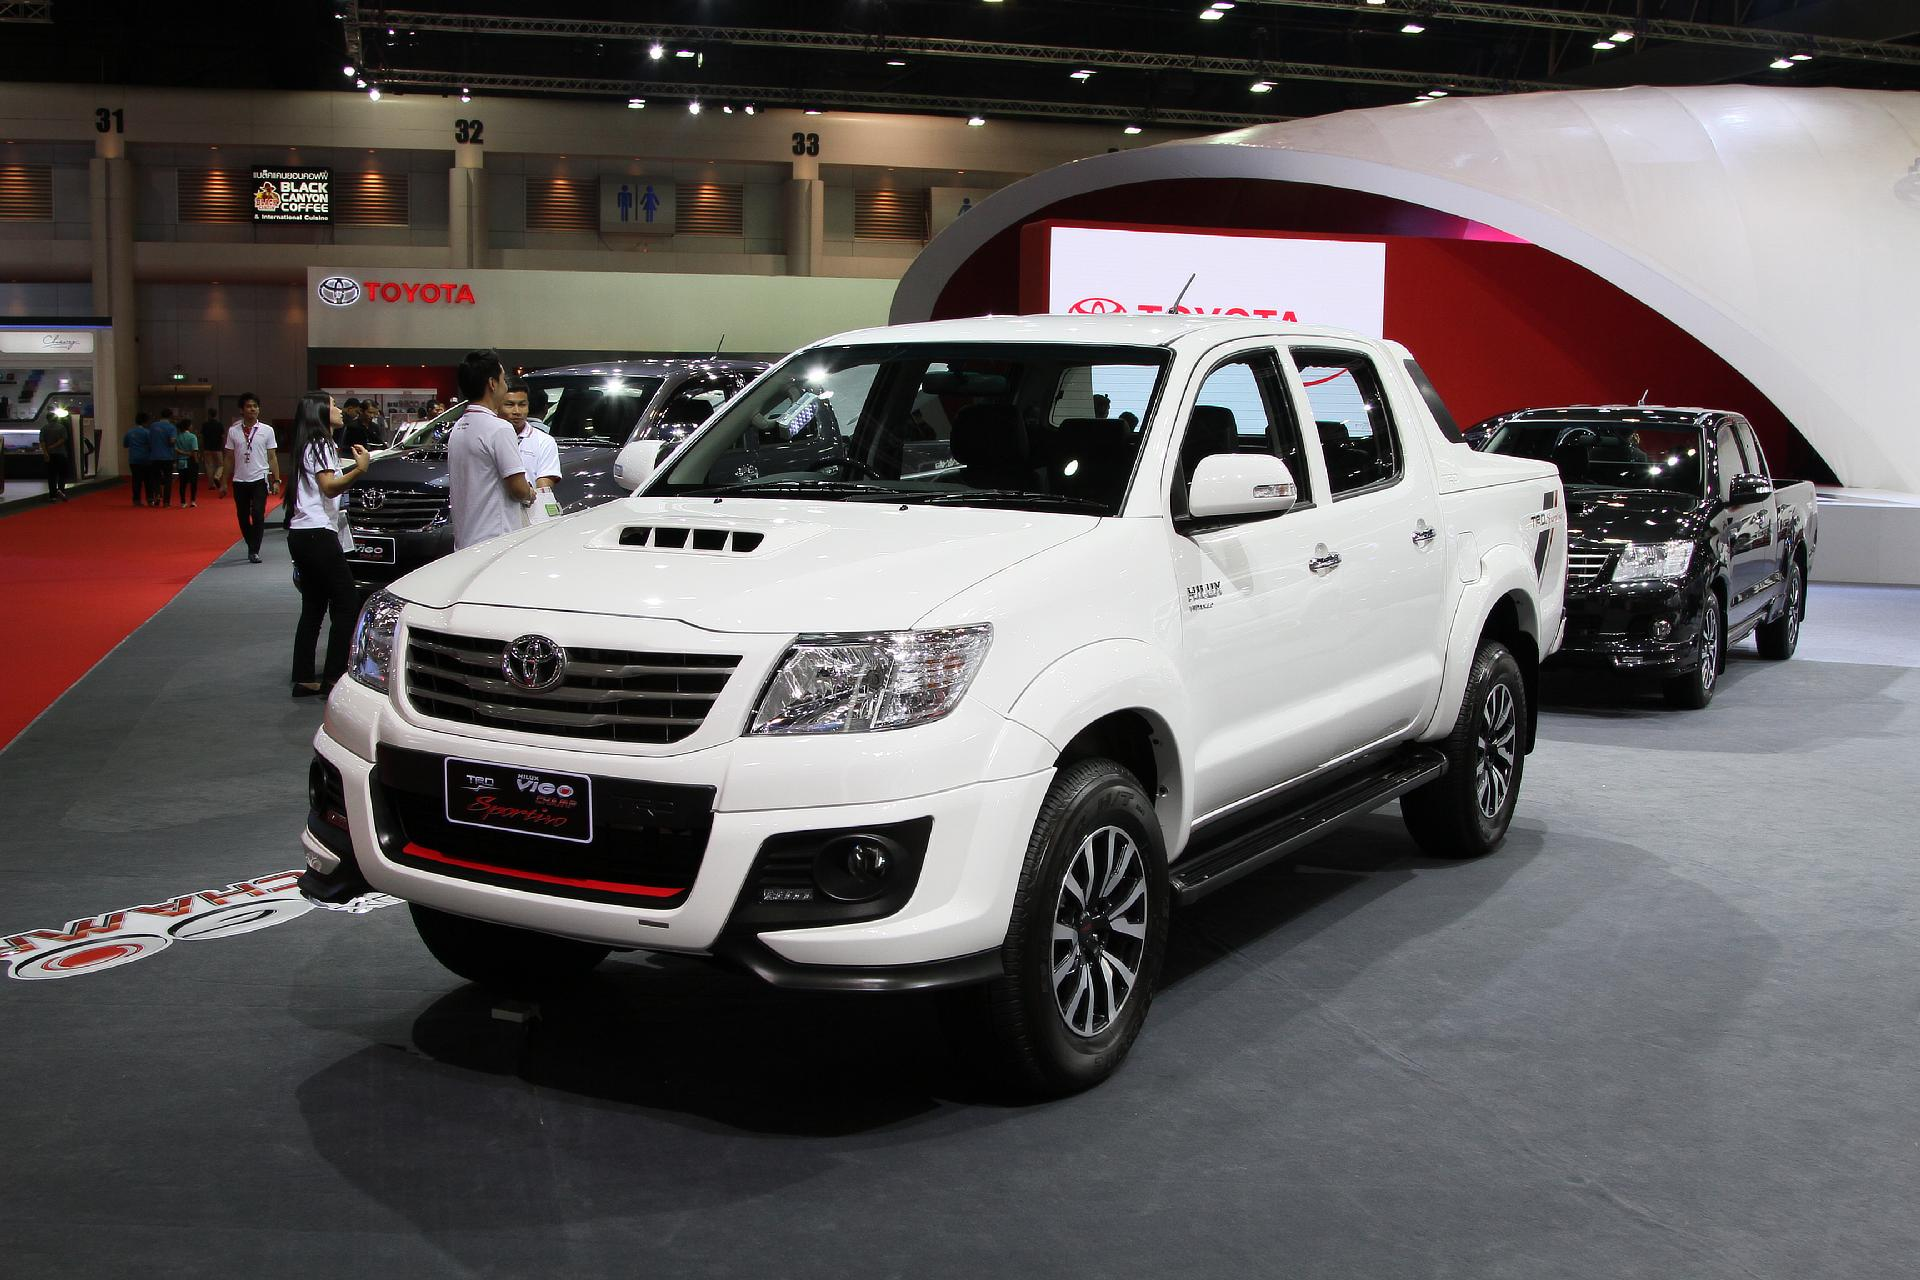 Hilux Vigo Trd Sportivo 2 Toyota Motor Corporation Official Global Website